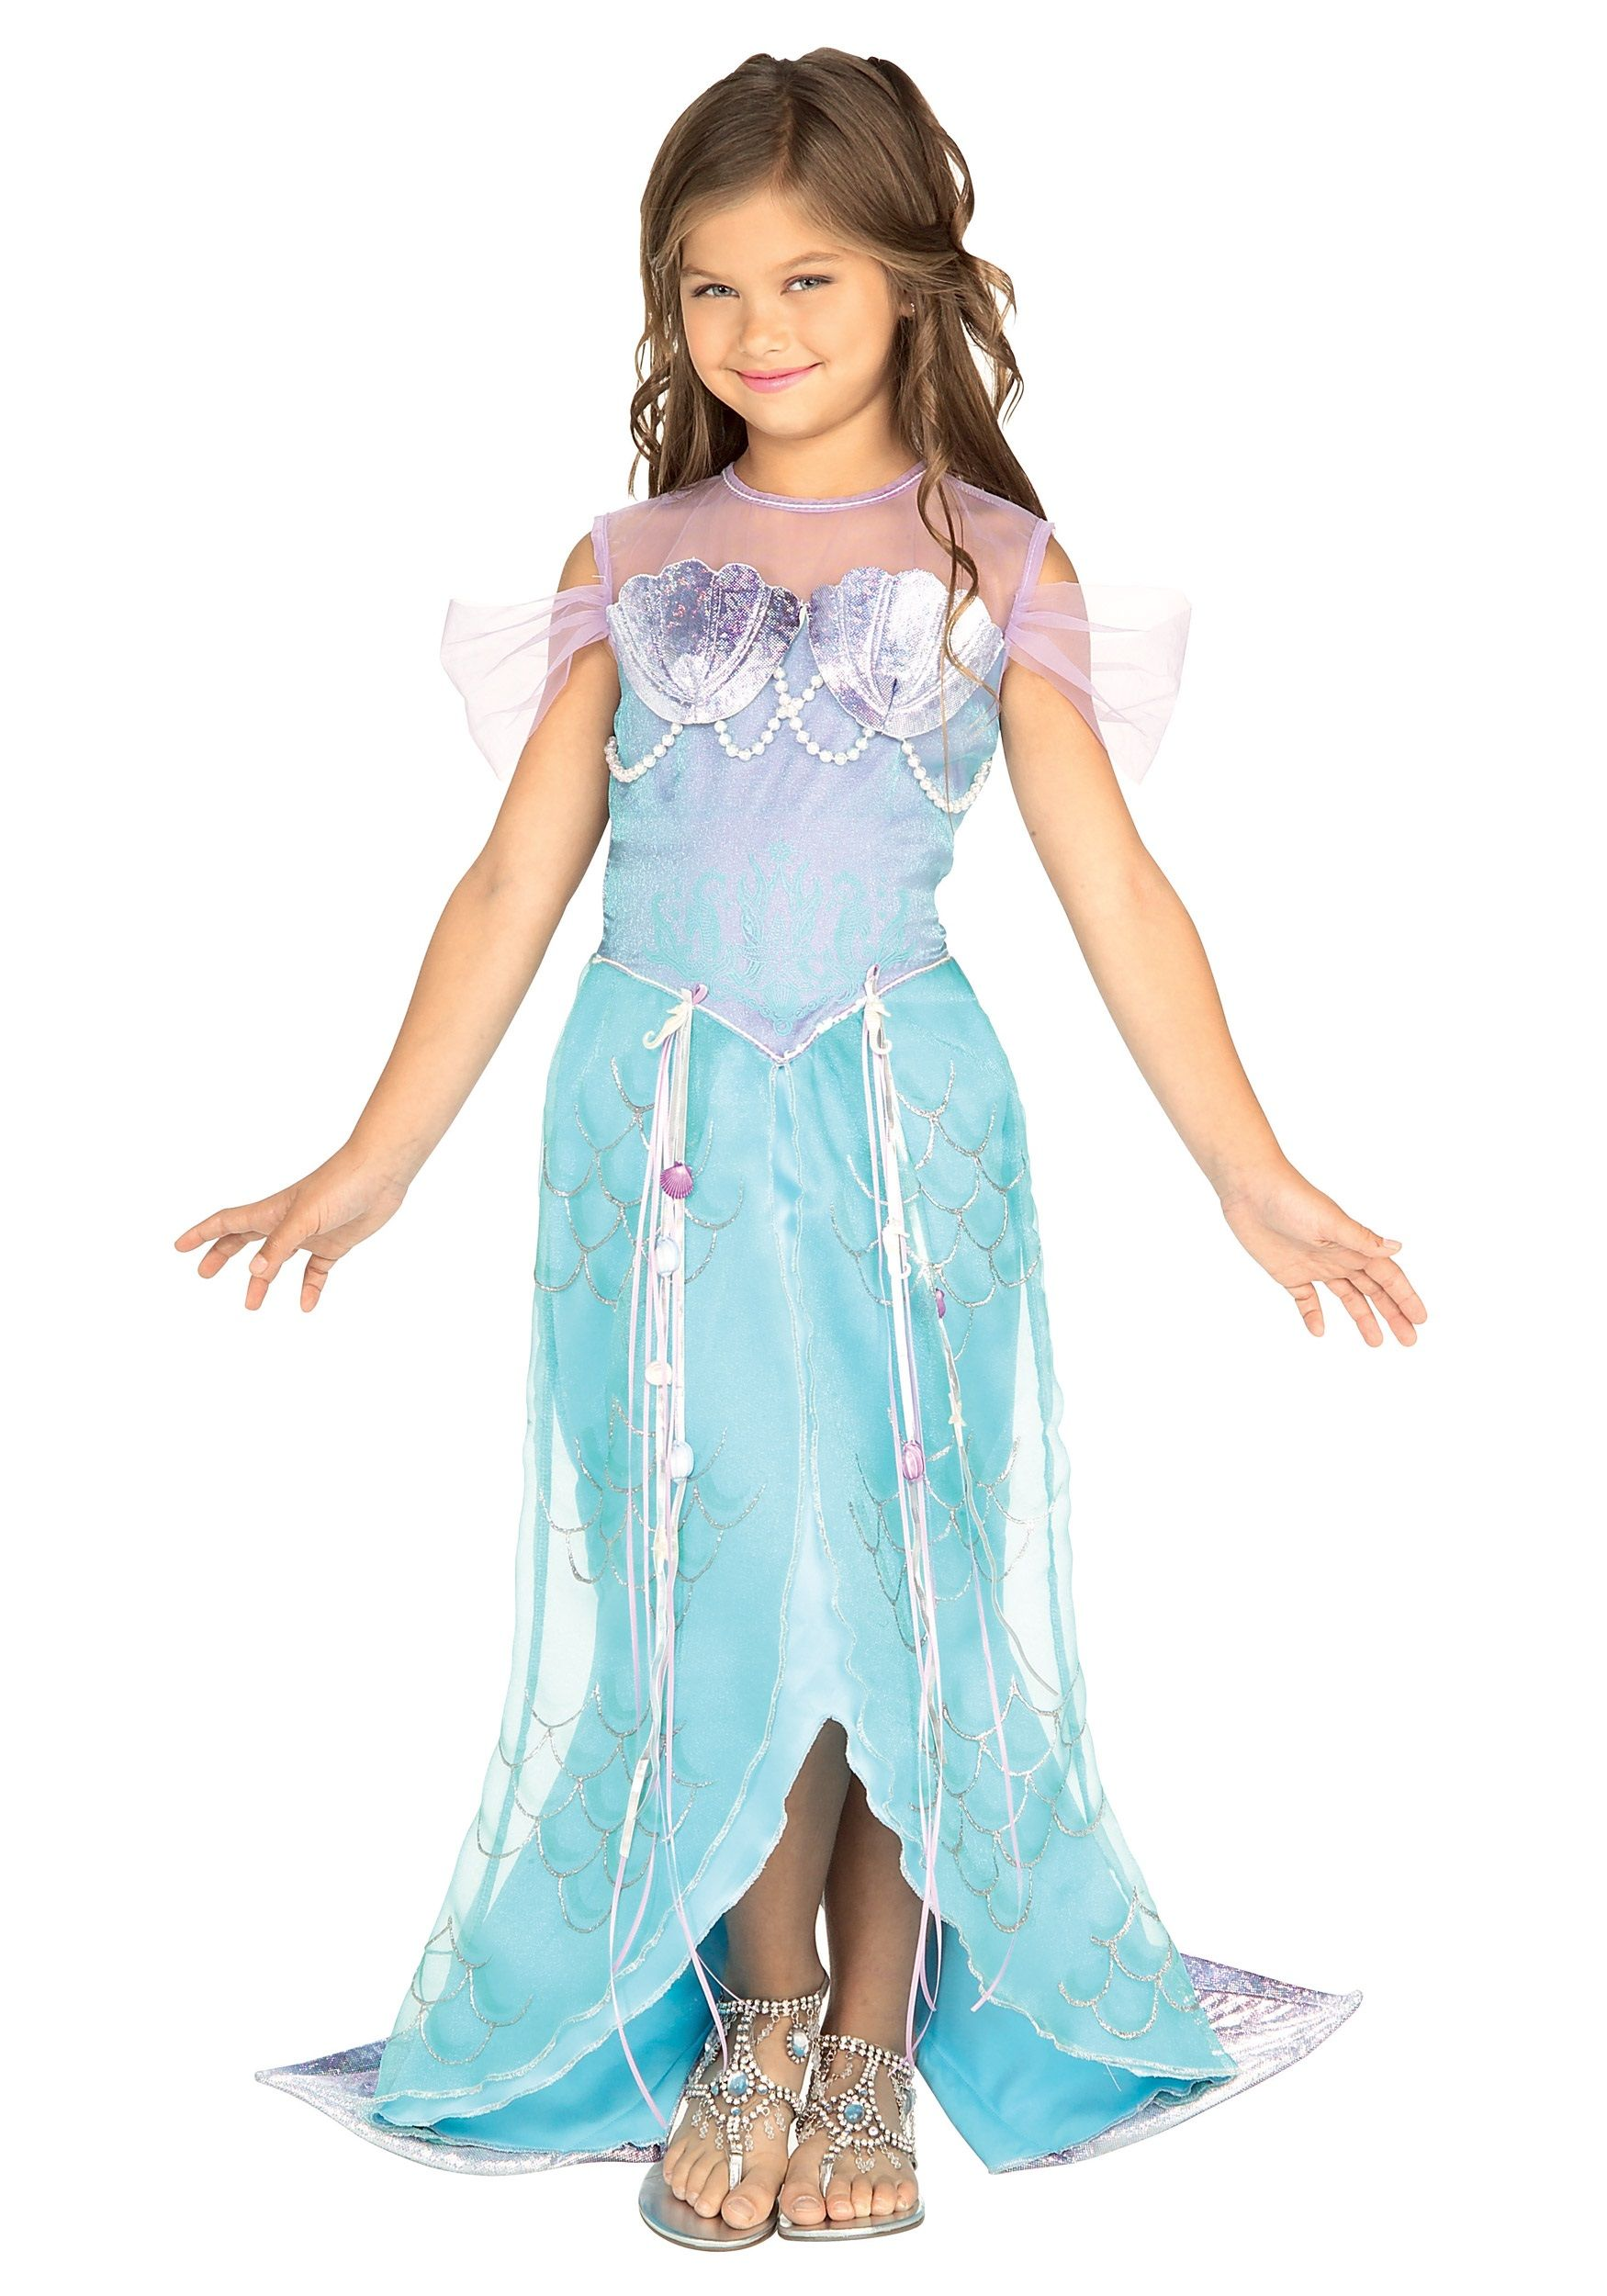 child mermaid princess costume - Mermaid Halloween Costume For Kids